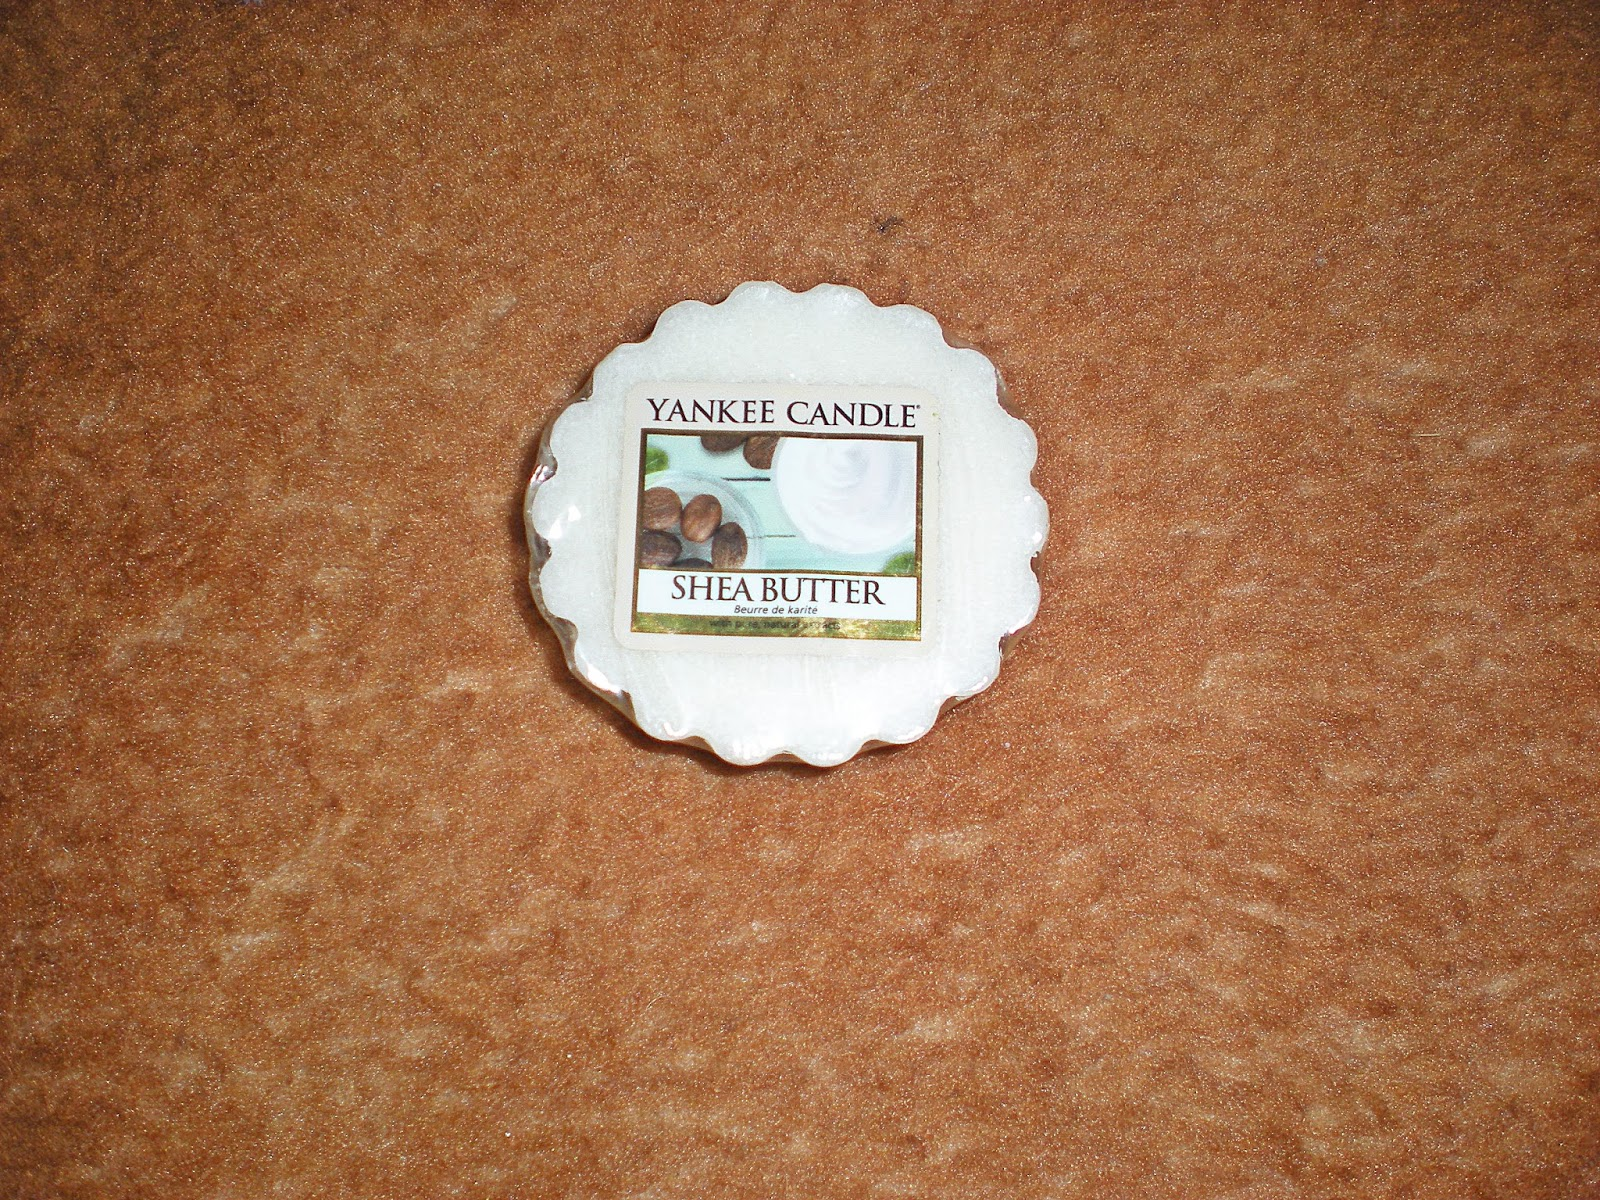 Shea Butter_ Yankee Candle_Goodies.pl